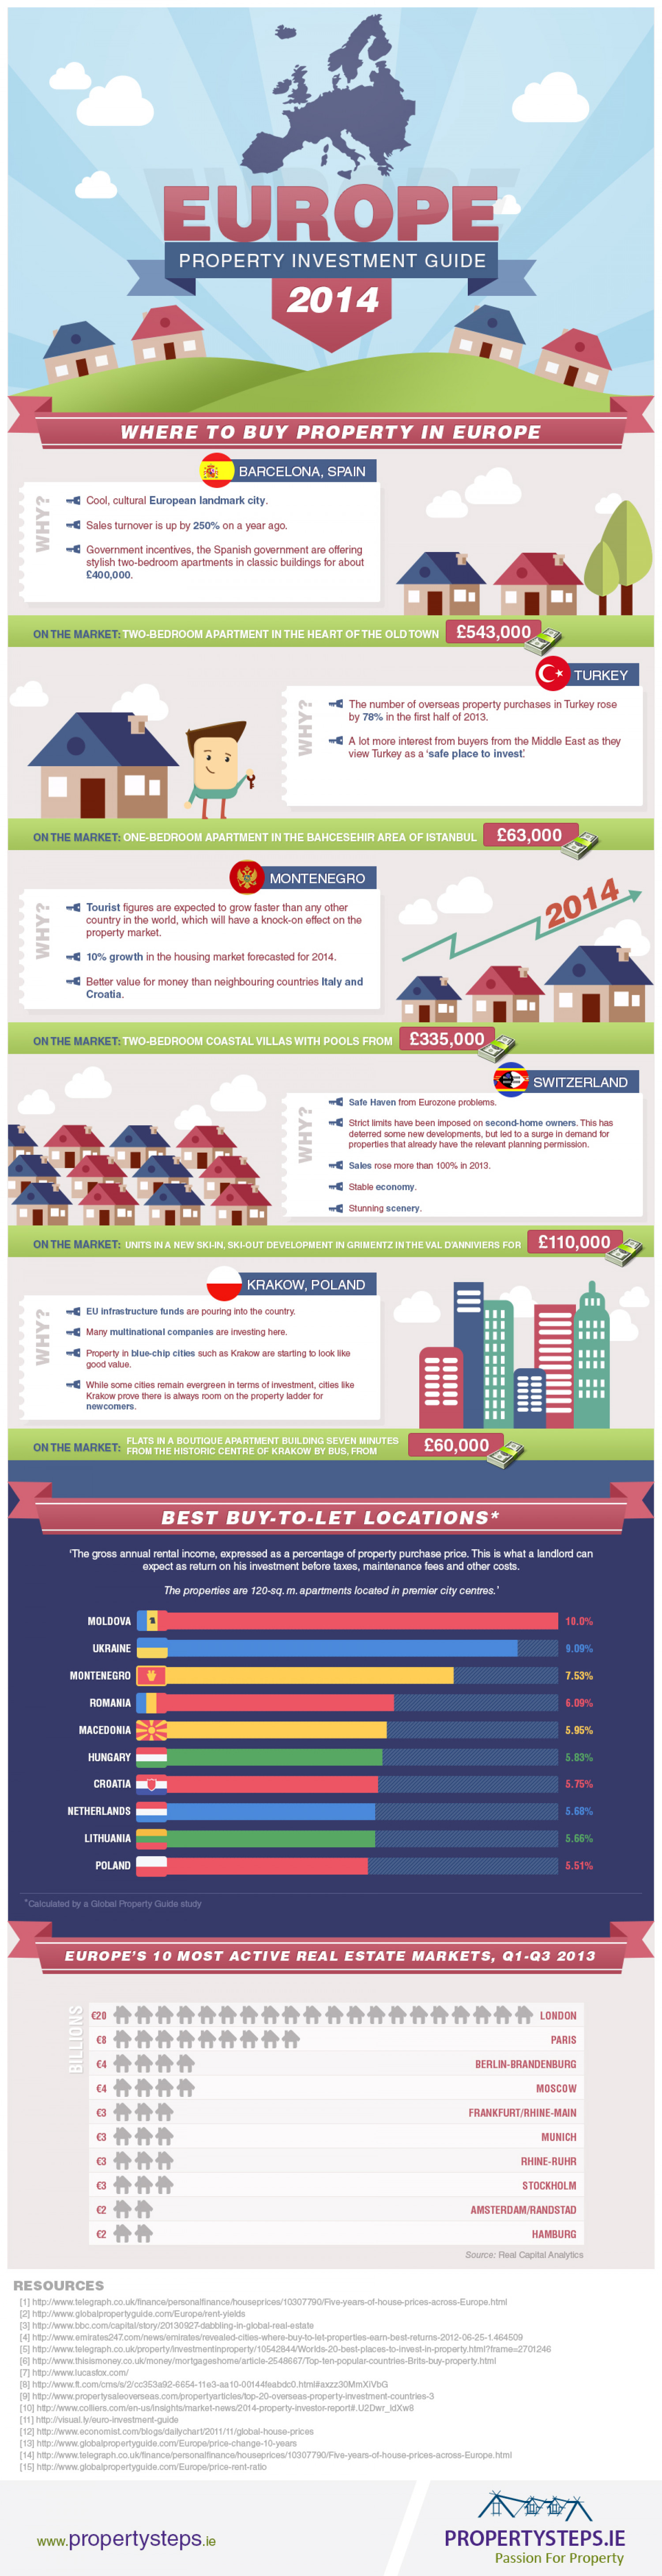 Europe Property Investment Guide 2014 Infographic